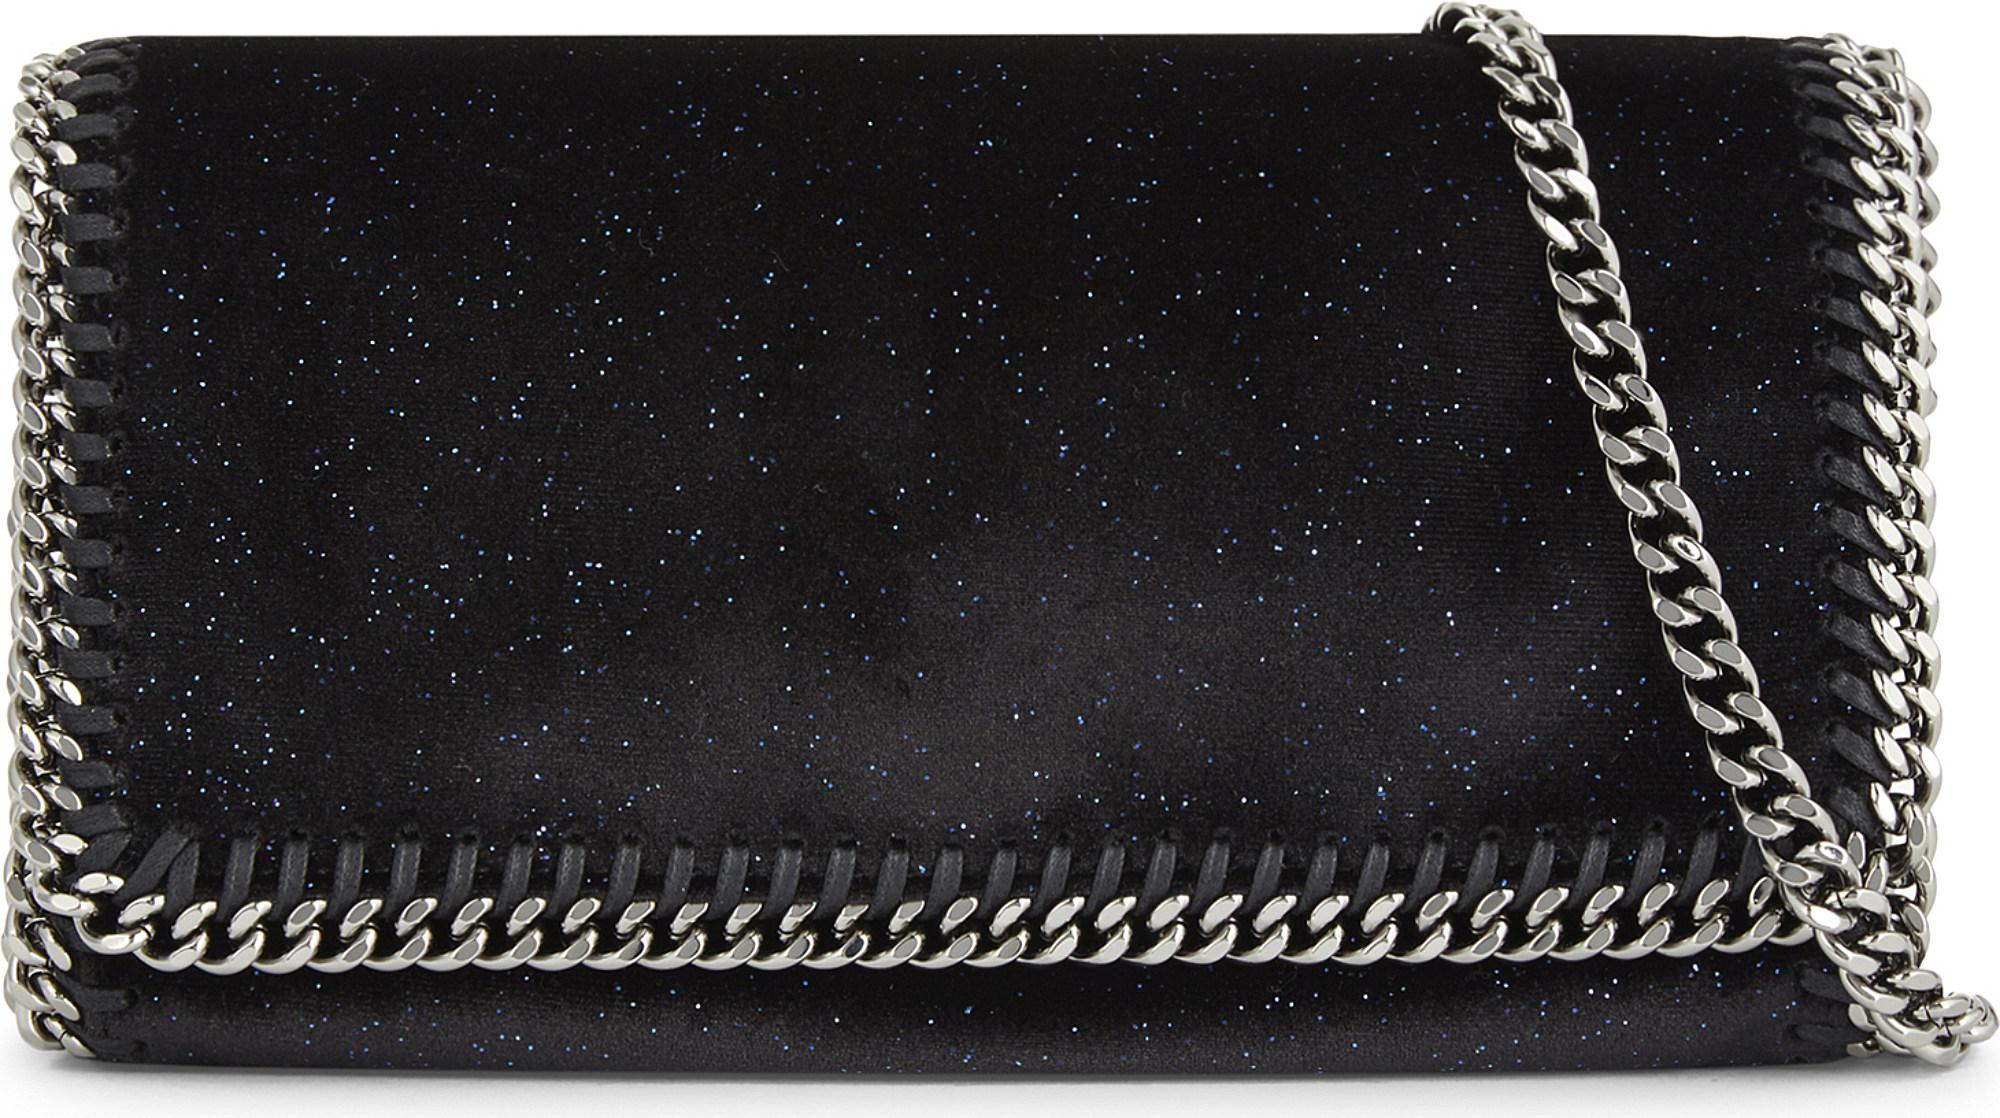 b7925c0272f0 Stella Mccartney Purse Selfridges - Best Purse Image Ccdbb.Org